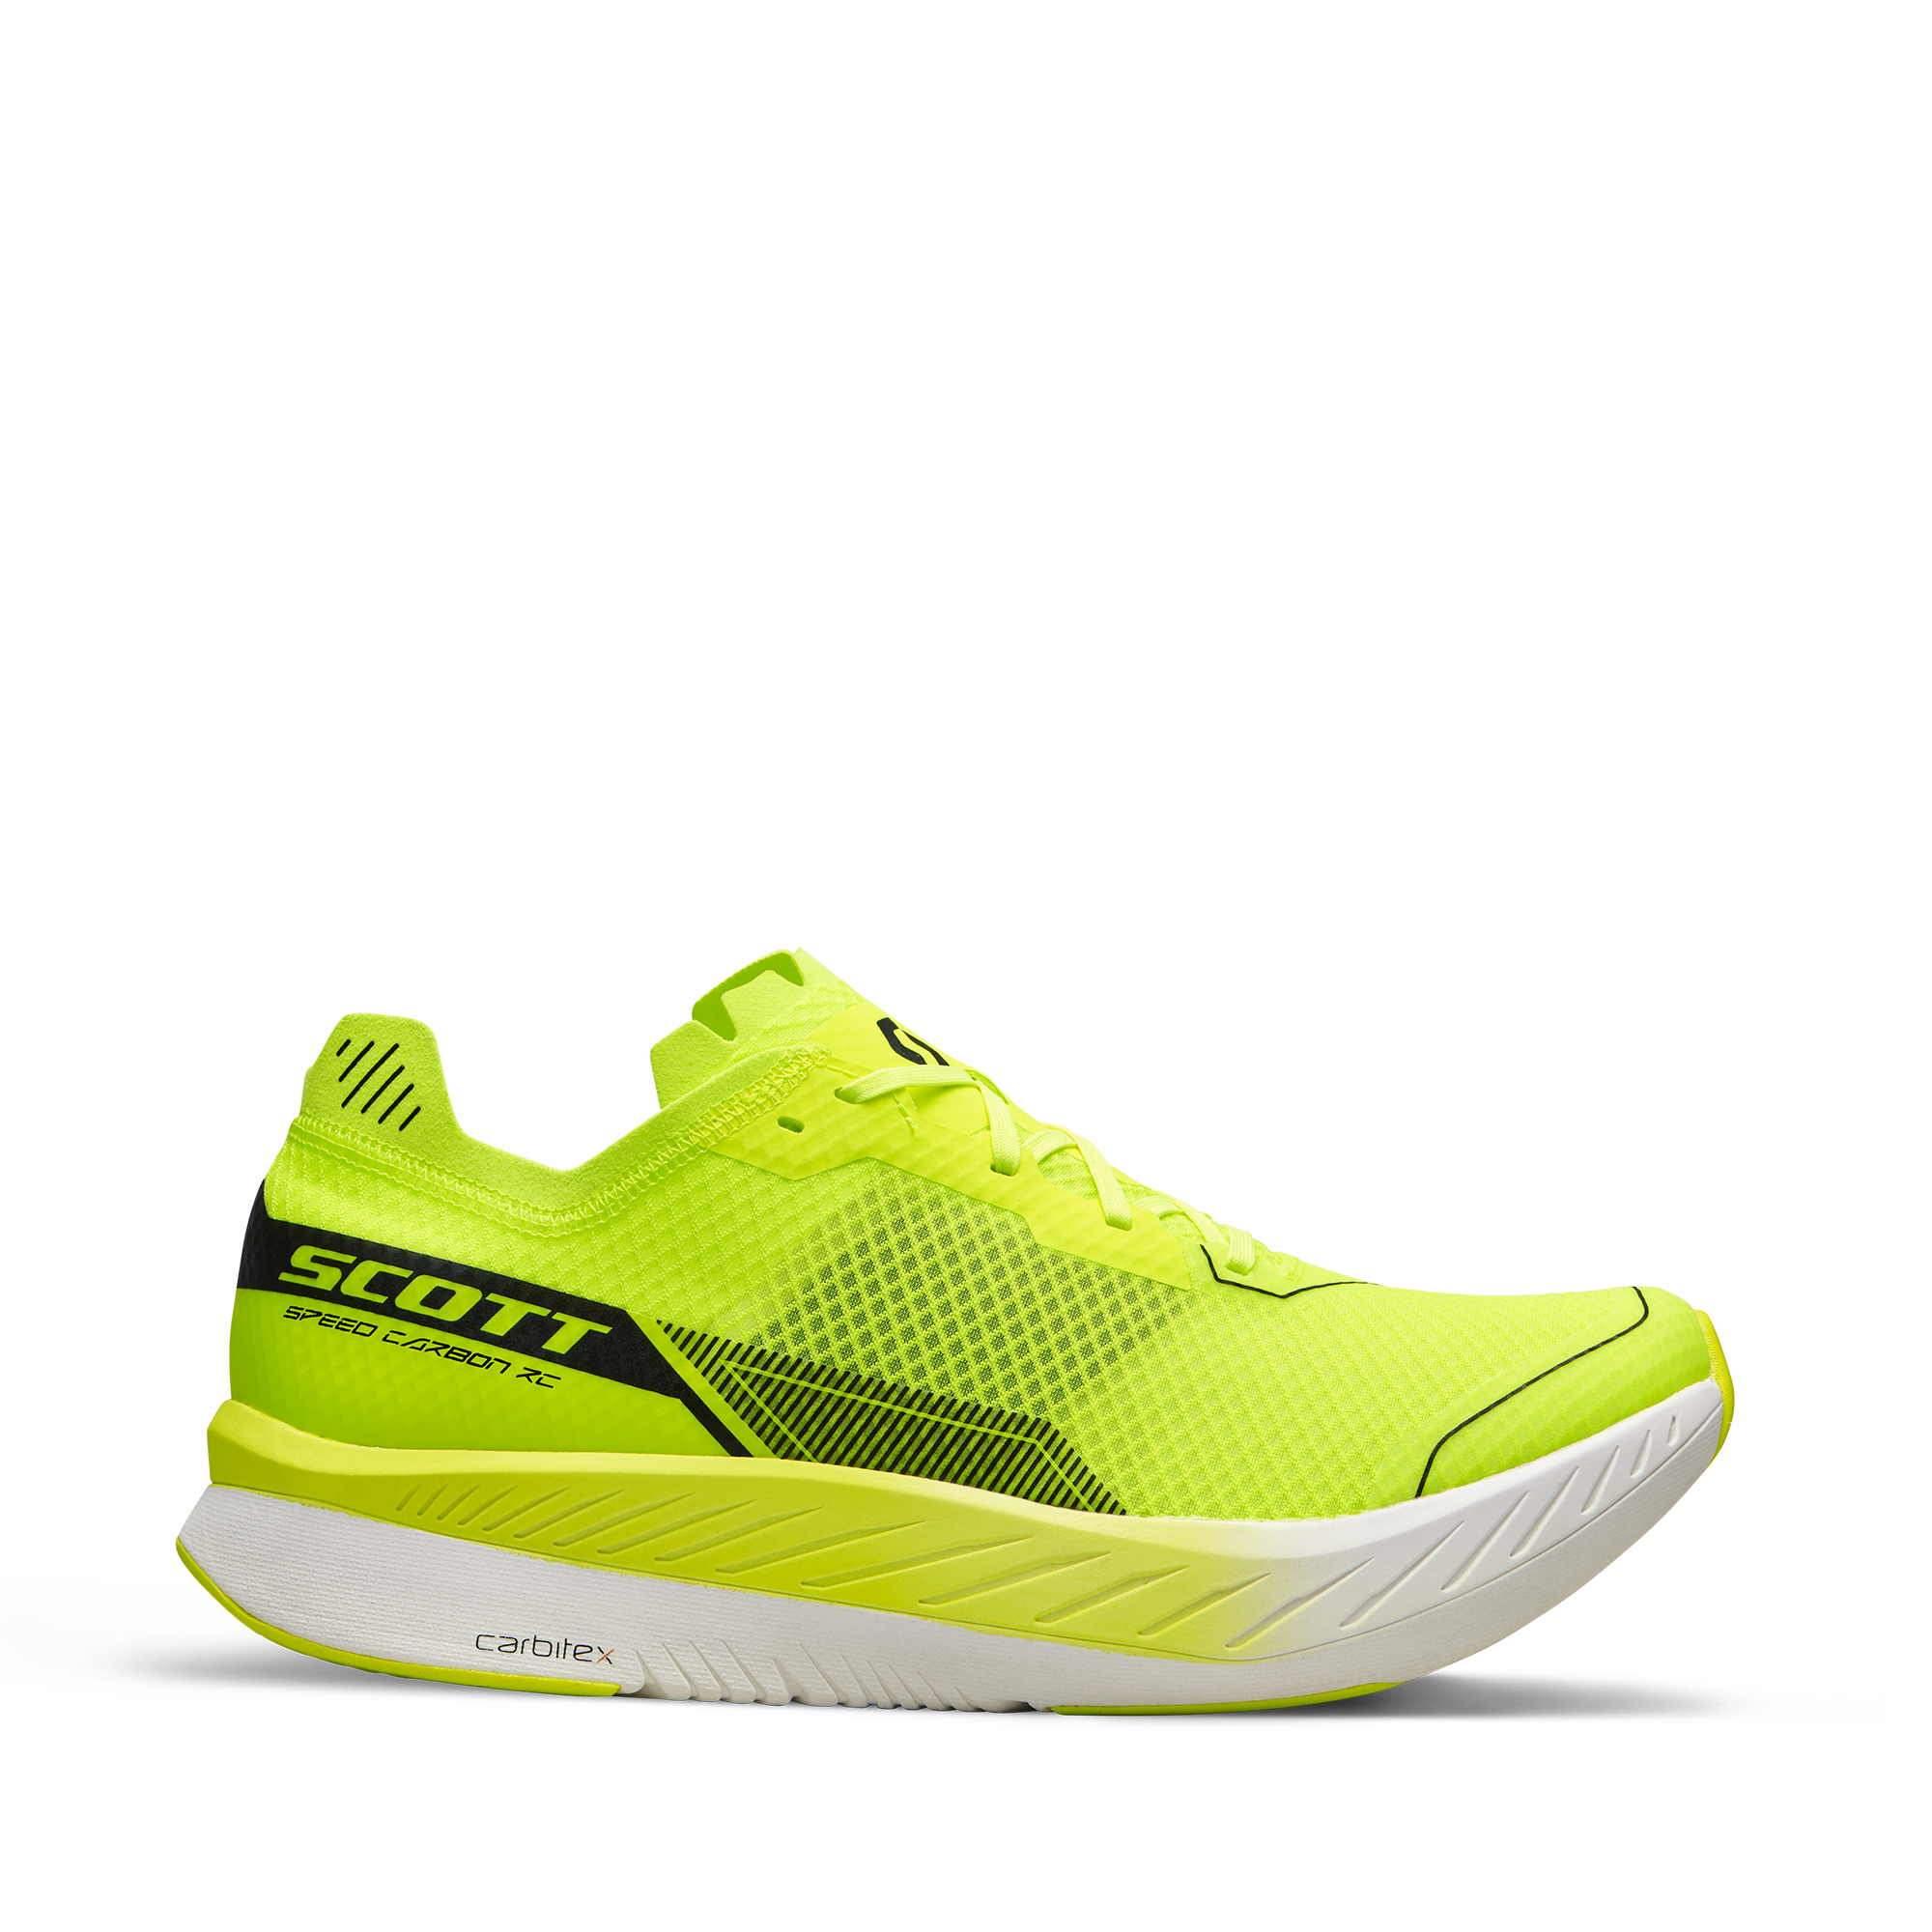 Speed Carbon RC Running Shoe